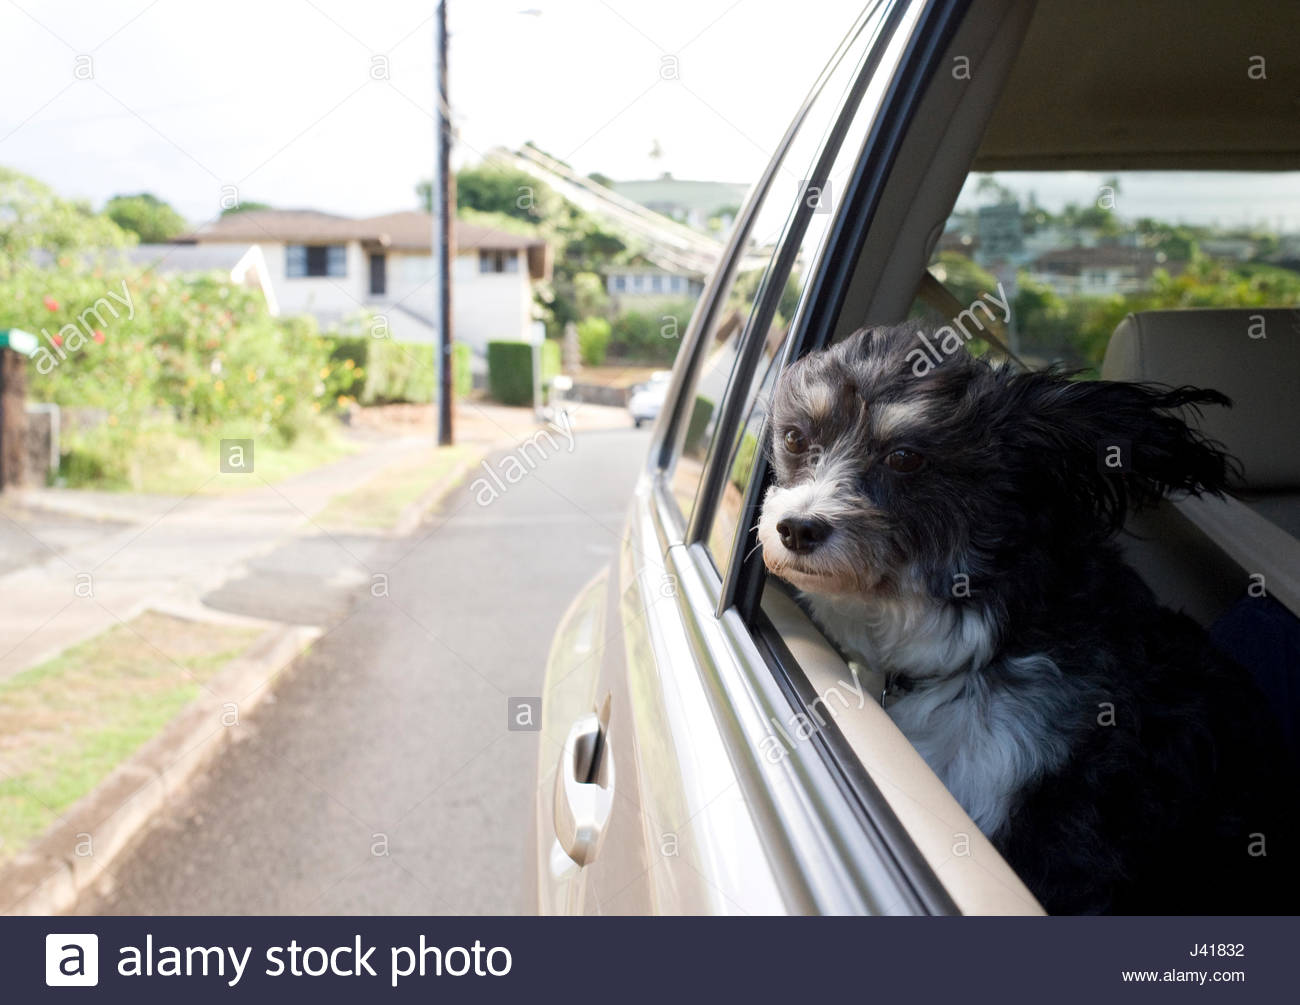 Small pet dog with head out of an automobile window - Stock Image